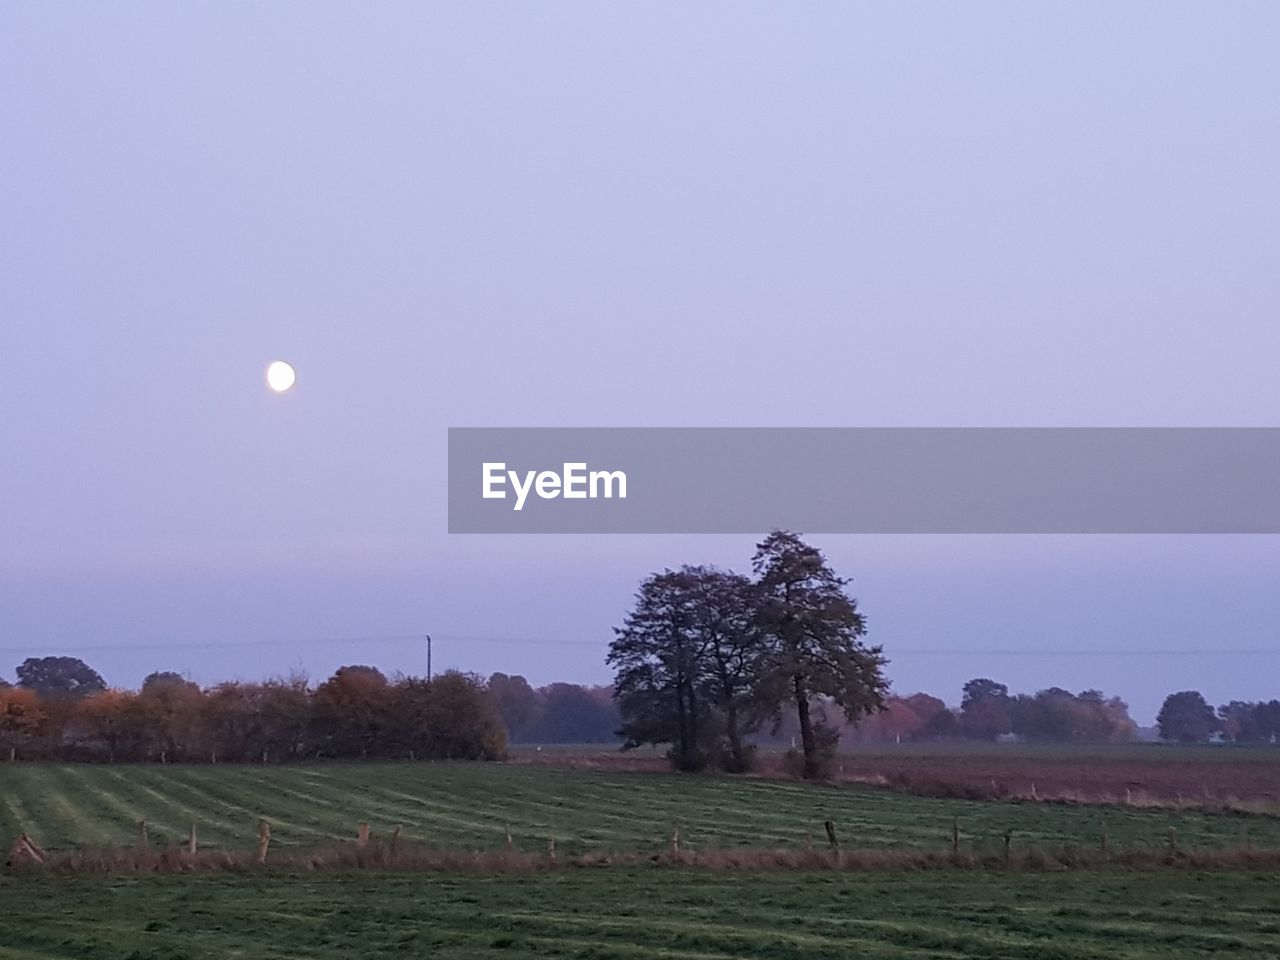 sky, scenics - nature, moon, tranquil scene, beauty in nature, landscape, tranquility, plant, tree, environment, land, field, nature, copy space, no people, growth, rural scene, clear sky, non-urban scene, idyllic, full moon, outdoors